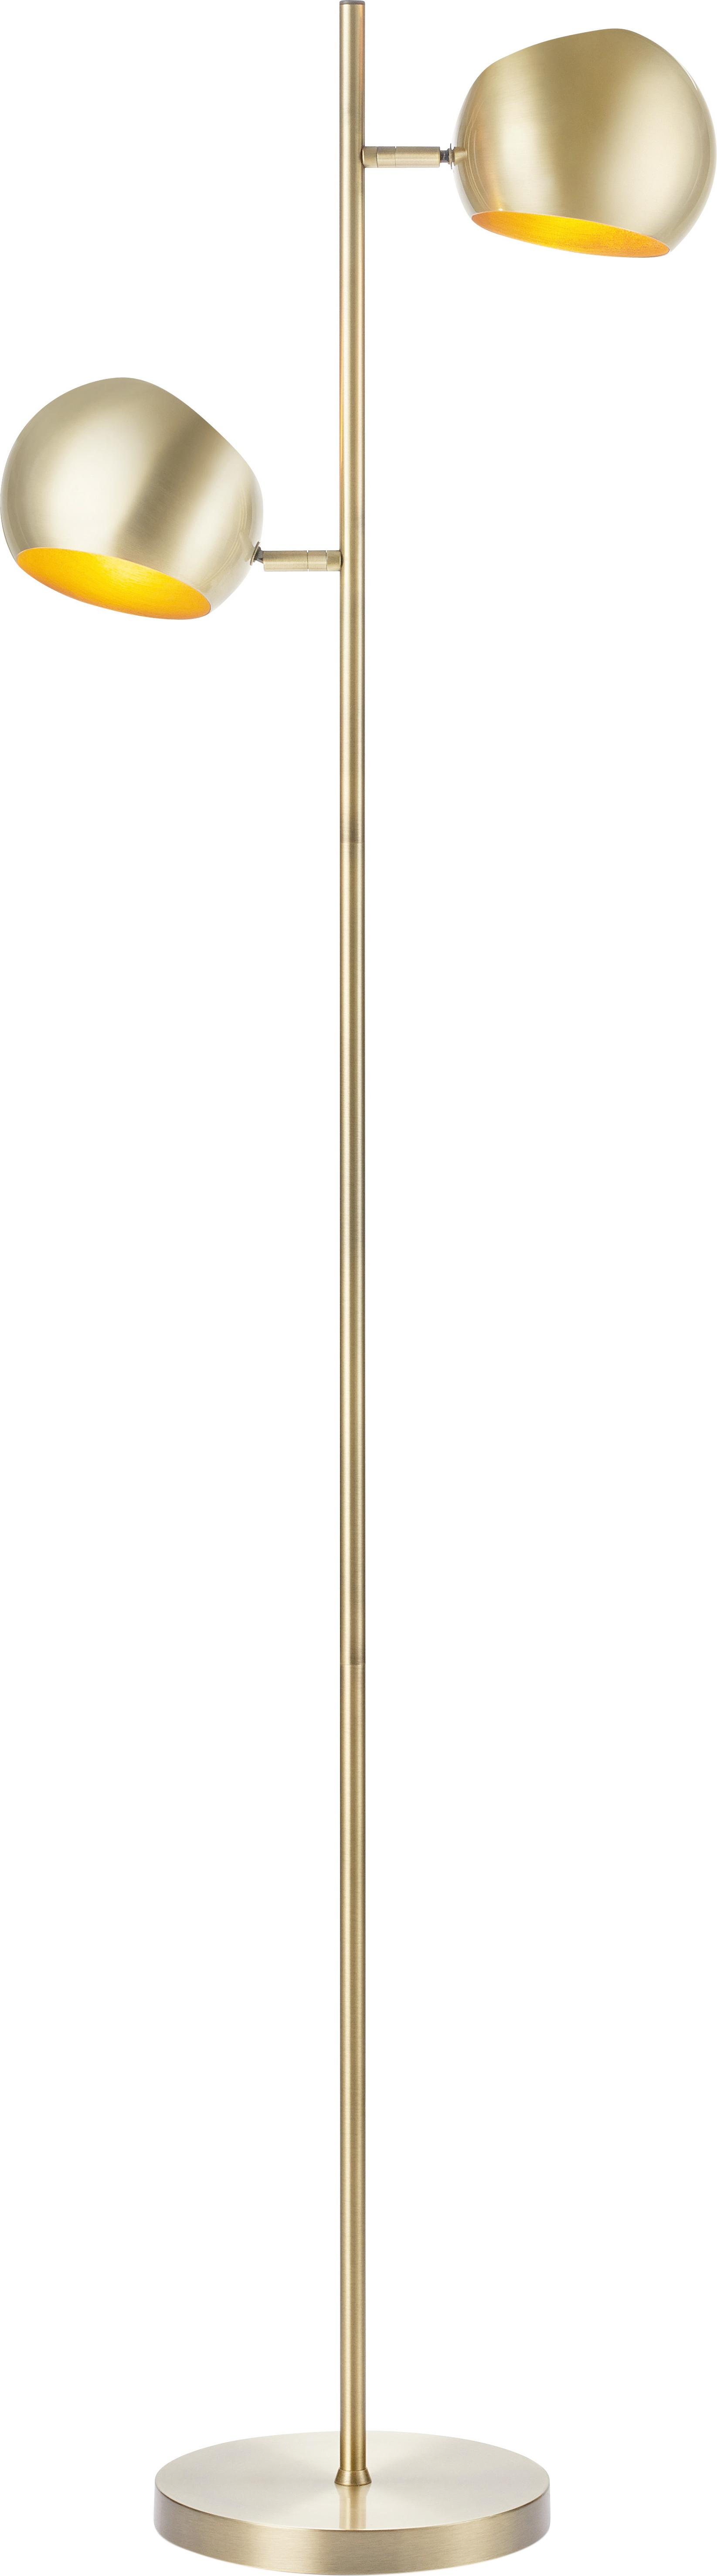 Stehlampe Edgar in Gold, Lampenschirm: Metall, lackiert, Messingfarben mit Antik-Finish, 40 x 145 cm